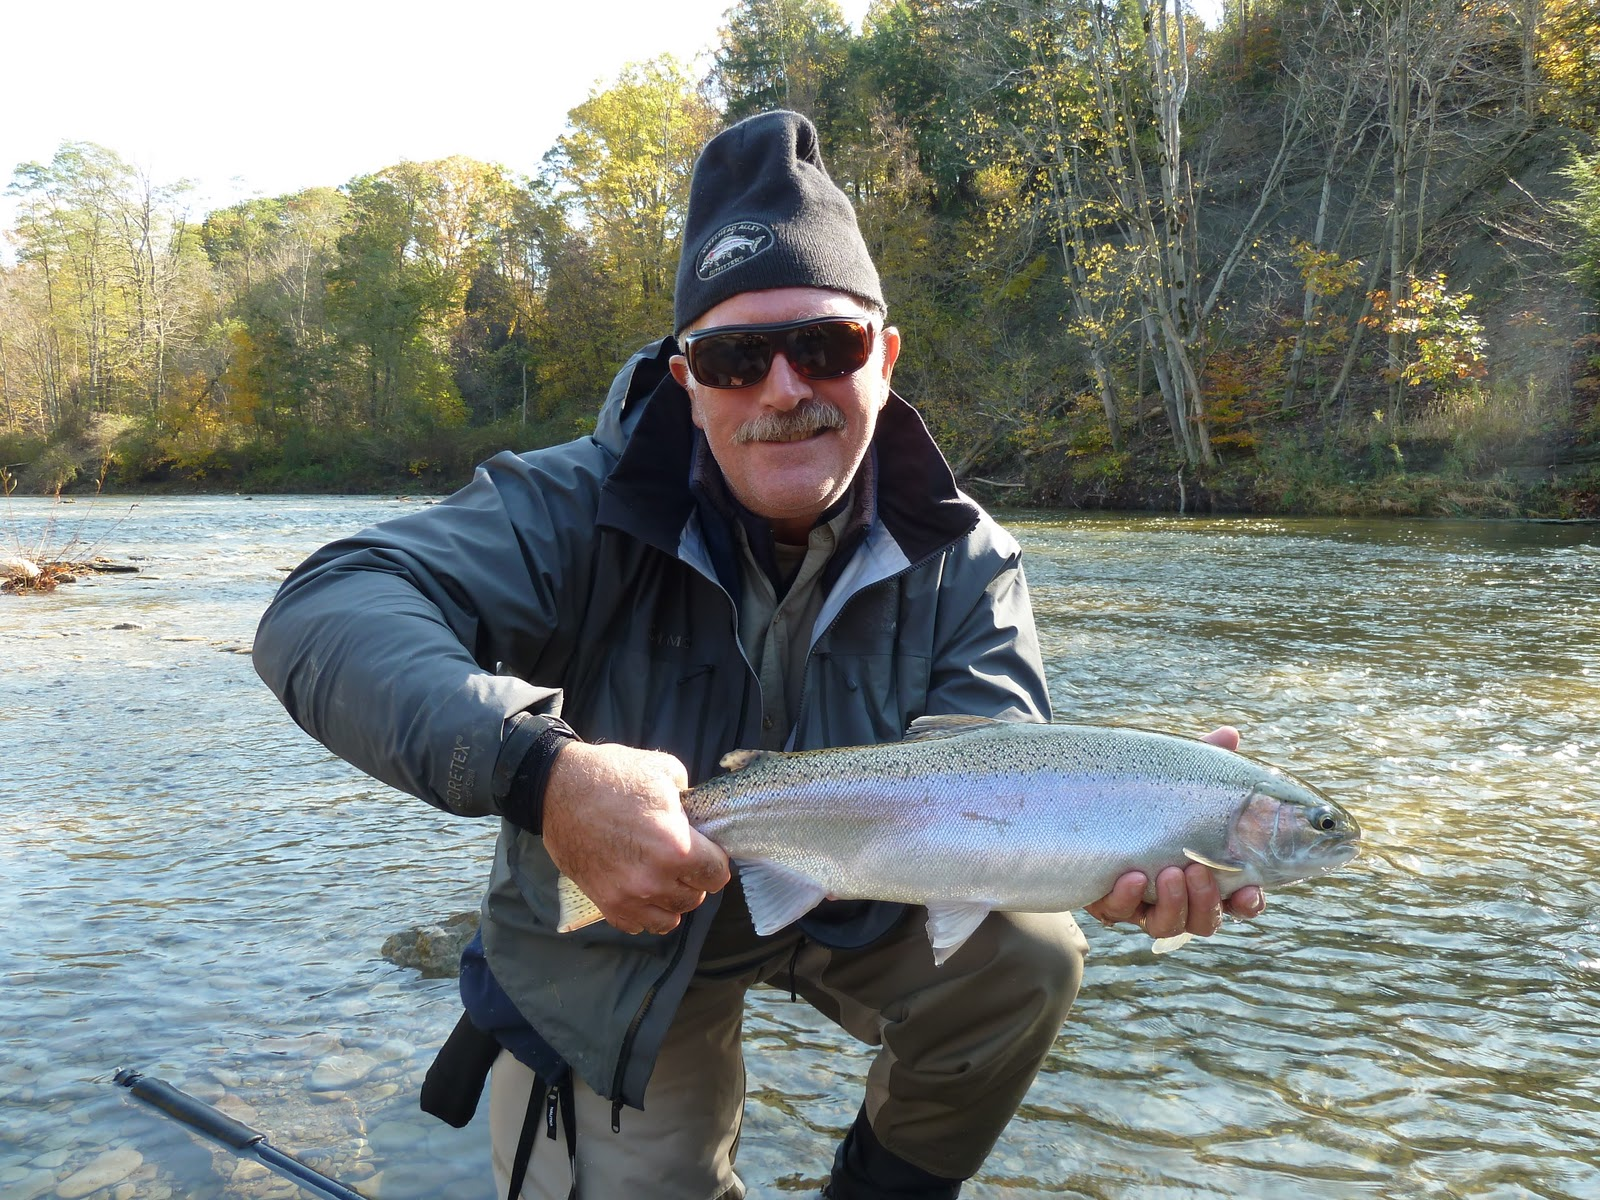 Steelhead alley outfitters lake erie fly fishing guide for Plenty of fish erie pa